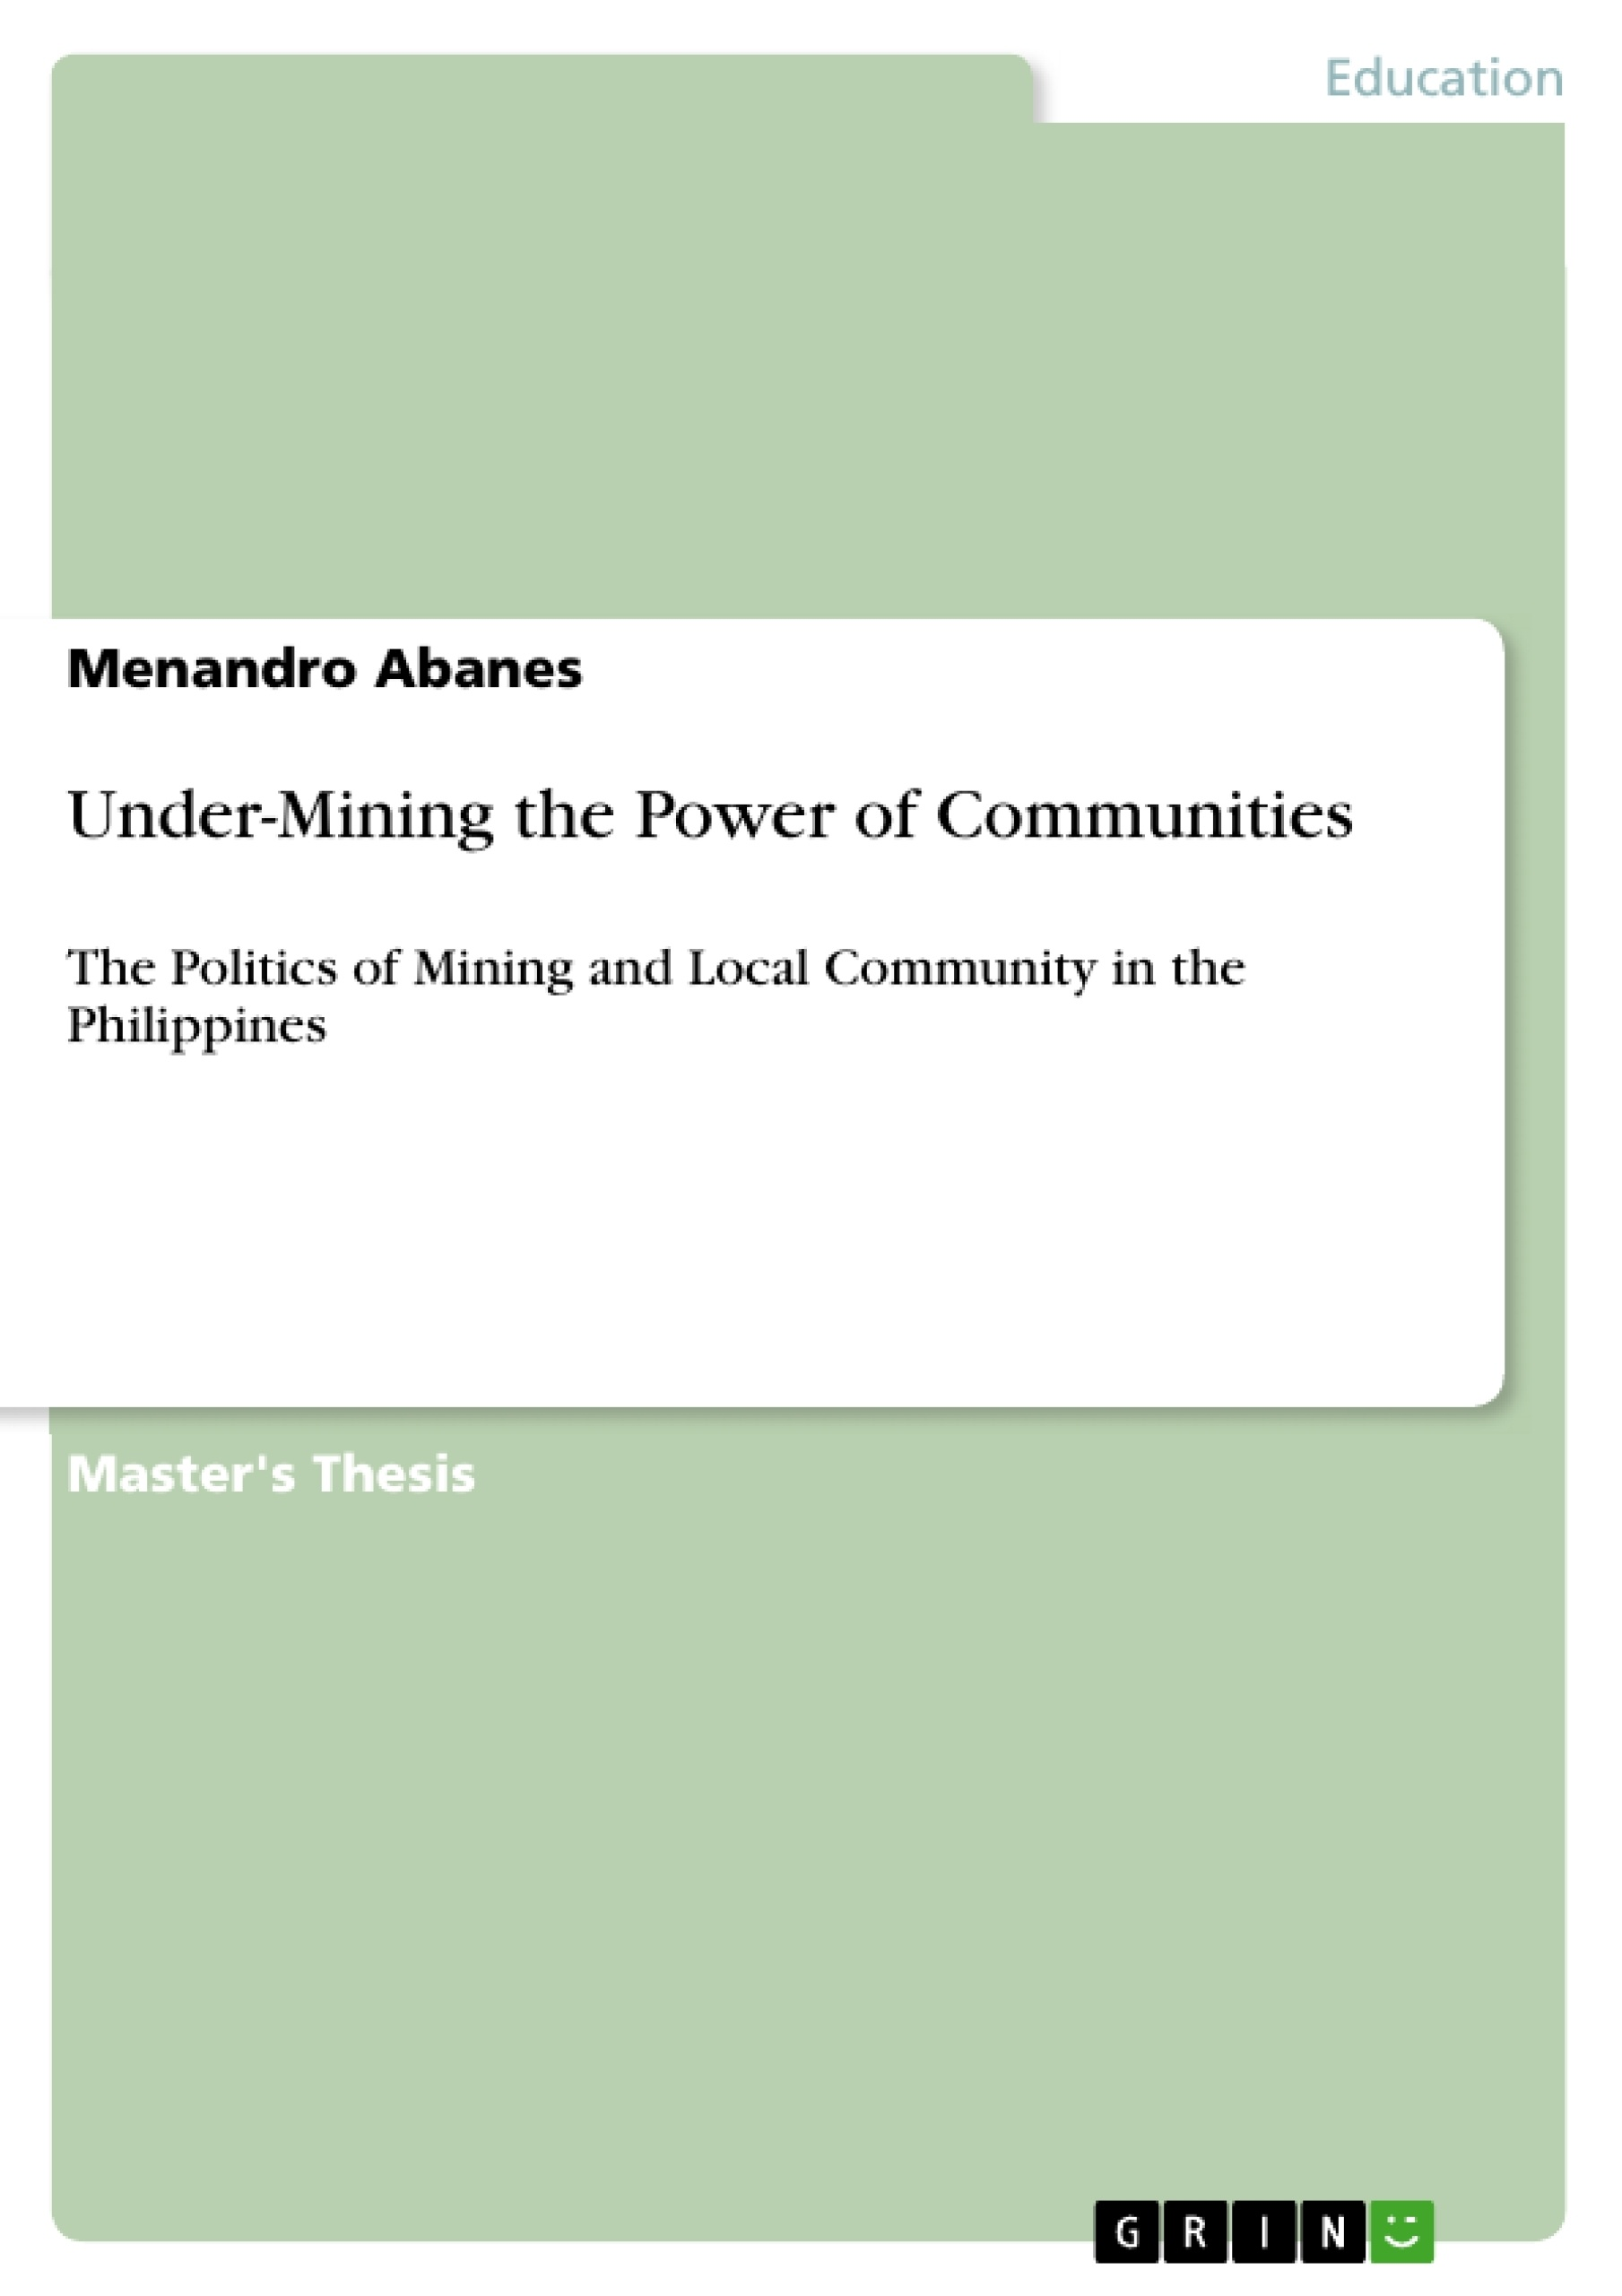 Title: Under-Mining the Power of Communities